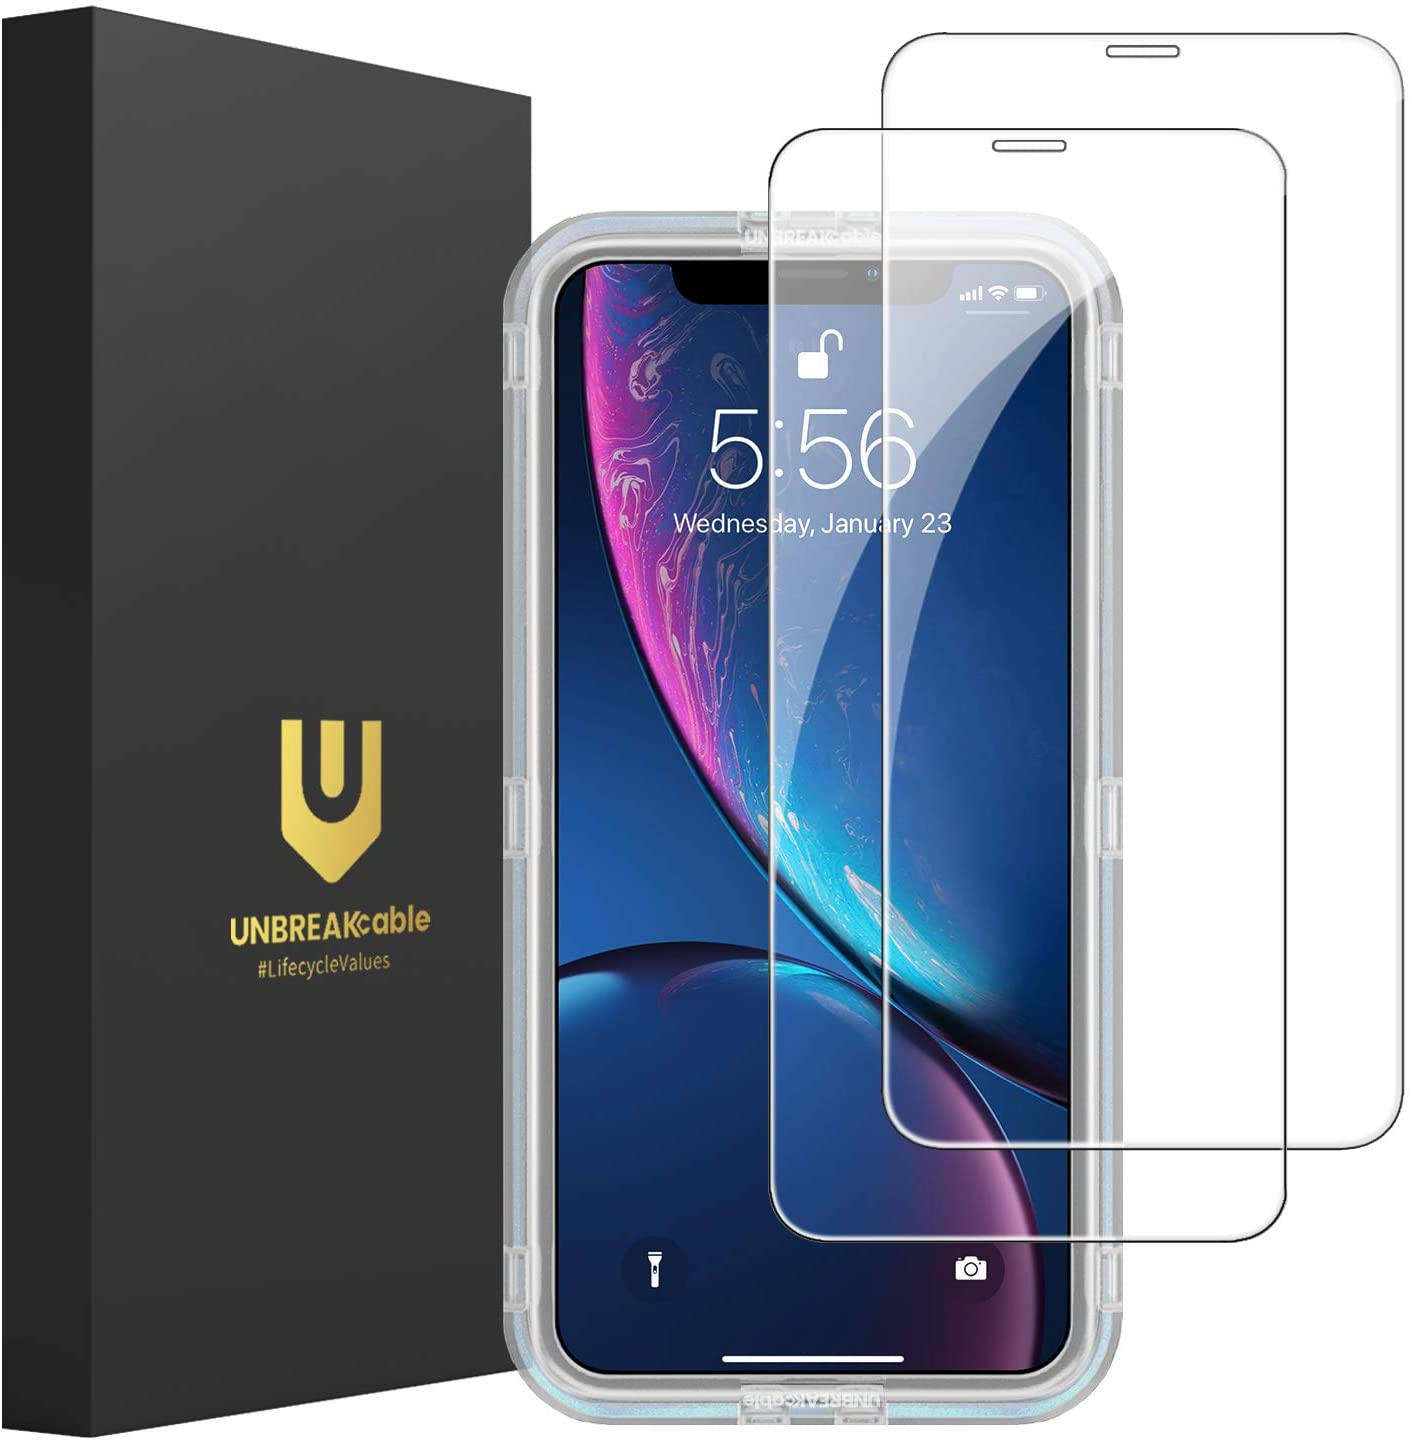 UNBREAKcable Screen Protector Compatible for iPhone 11, iPhone XR [2 Pack], Double Defense Series Premium Tempered Glass Screen Protector for iPhone 6.1 Inch (2019)